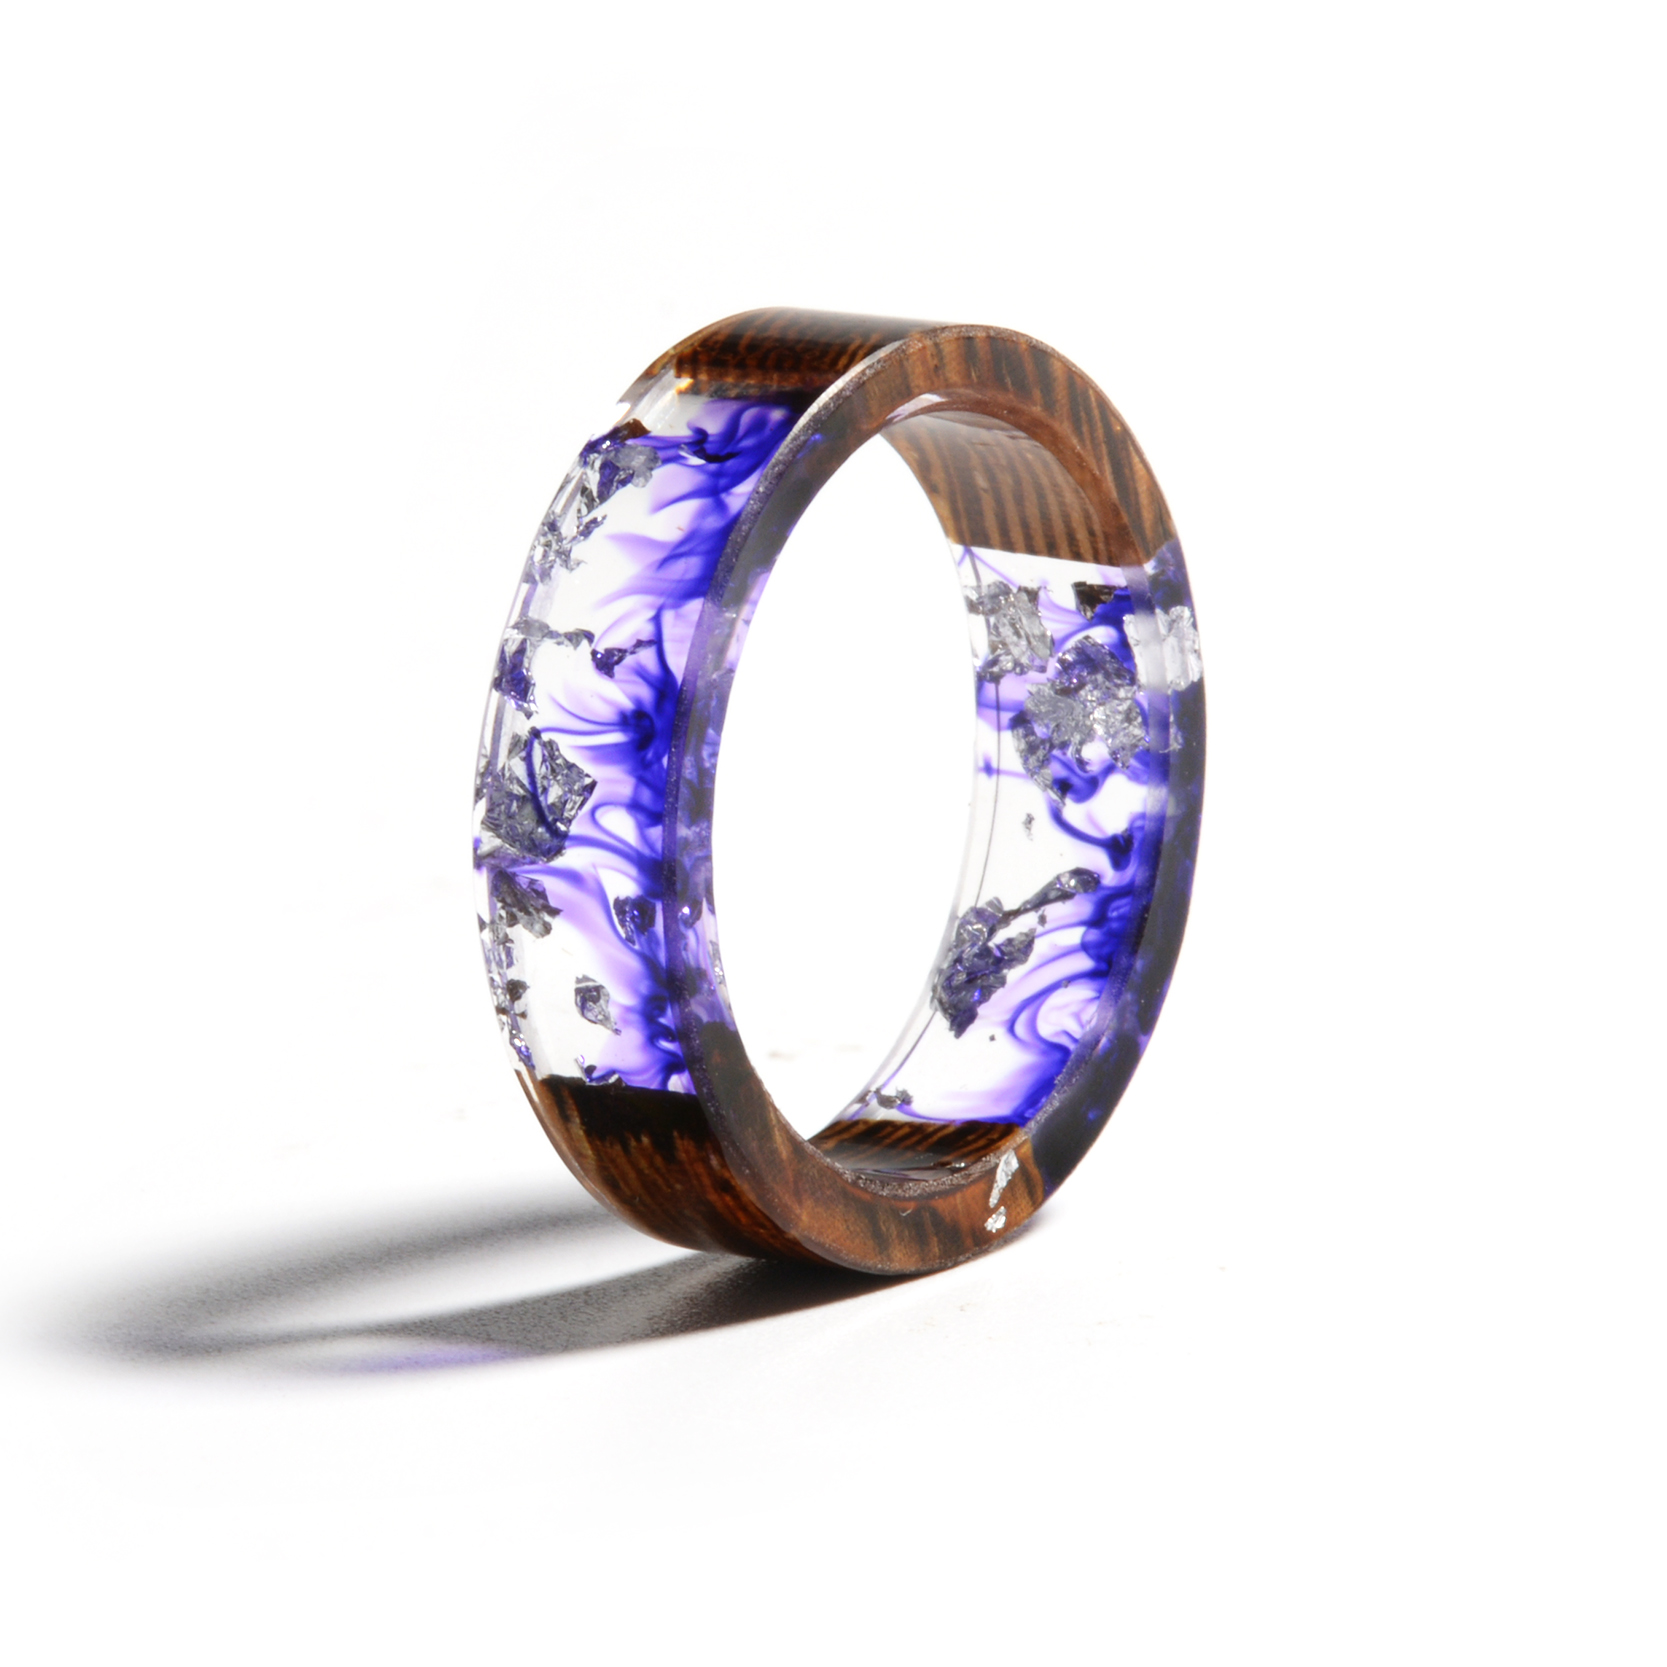 HTB1c3pPainrK1Rjy1Xcq6yeDVXaf - Hot Sale Handmade Wood Resin Ring Dried Flowers Plants Inside Jewelry Resin Ring Transparent Anniversary Ring for Women